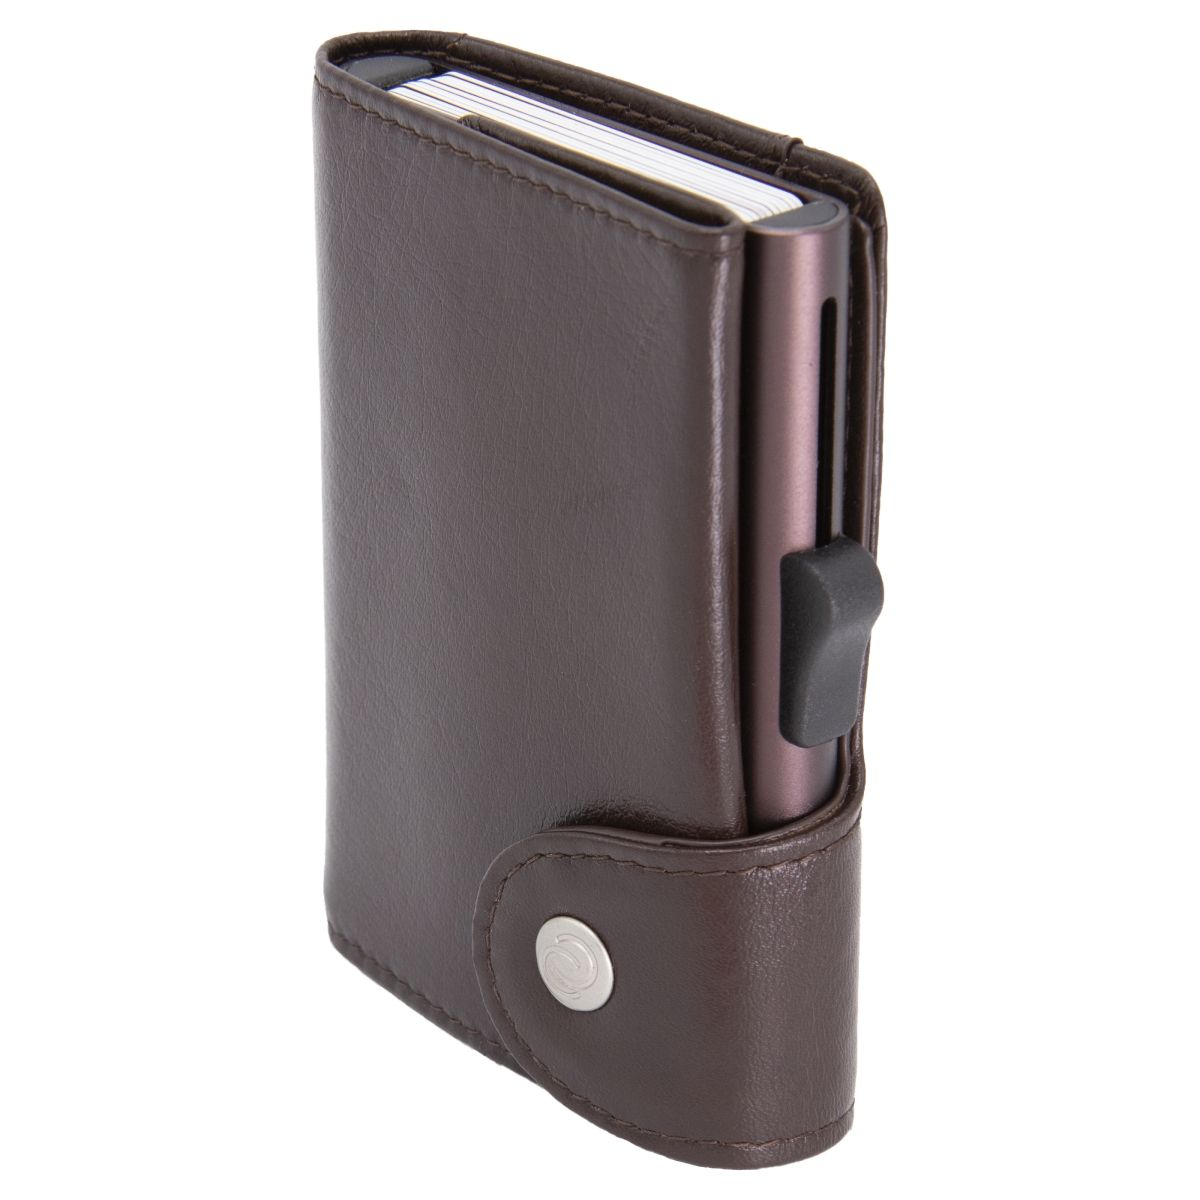 XL Aluminum Wallet with Genuine Leather - Mogano Brown